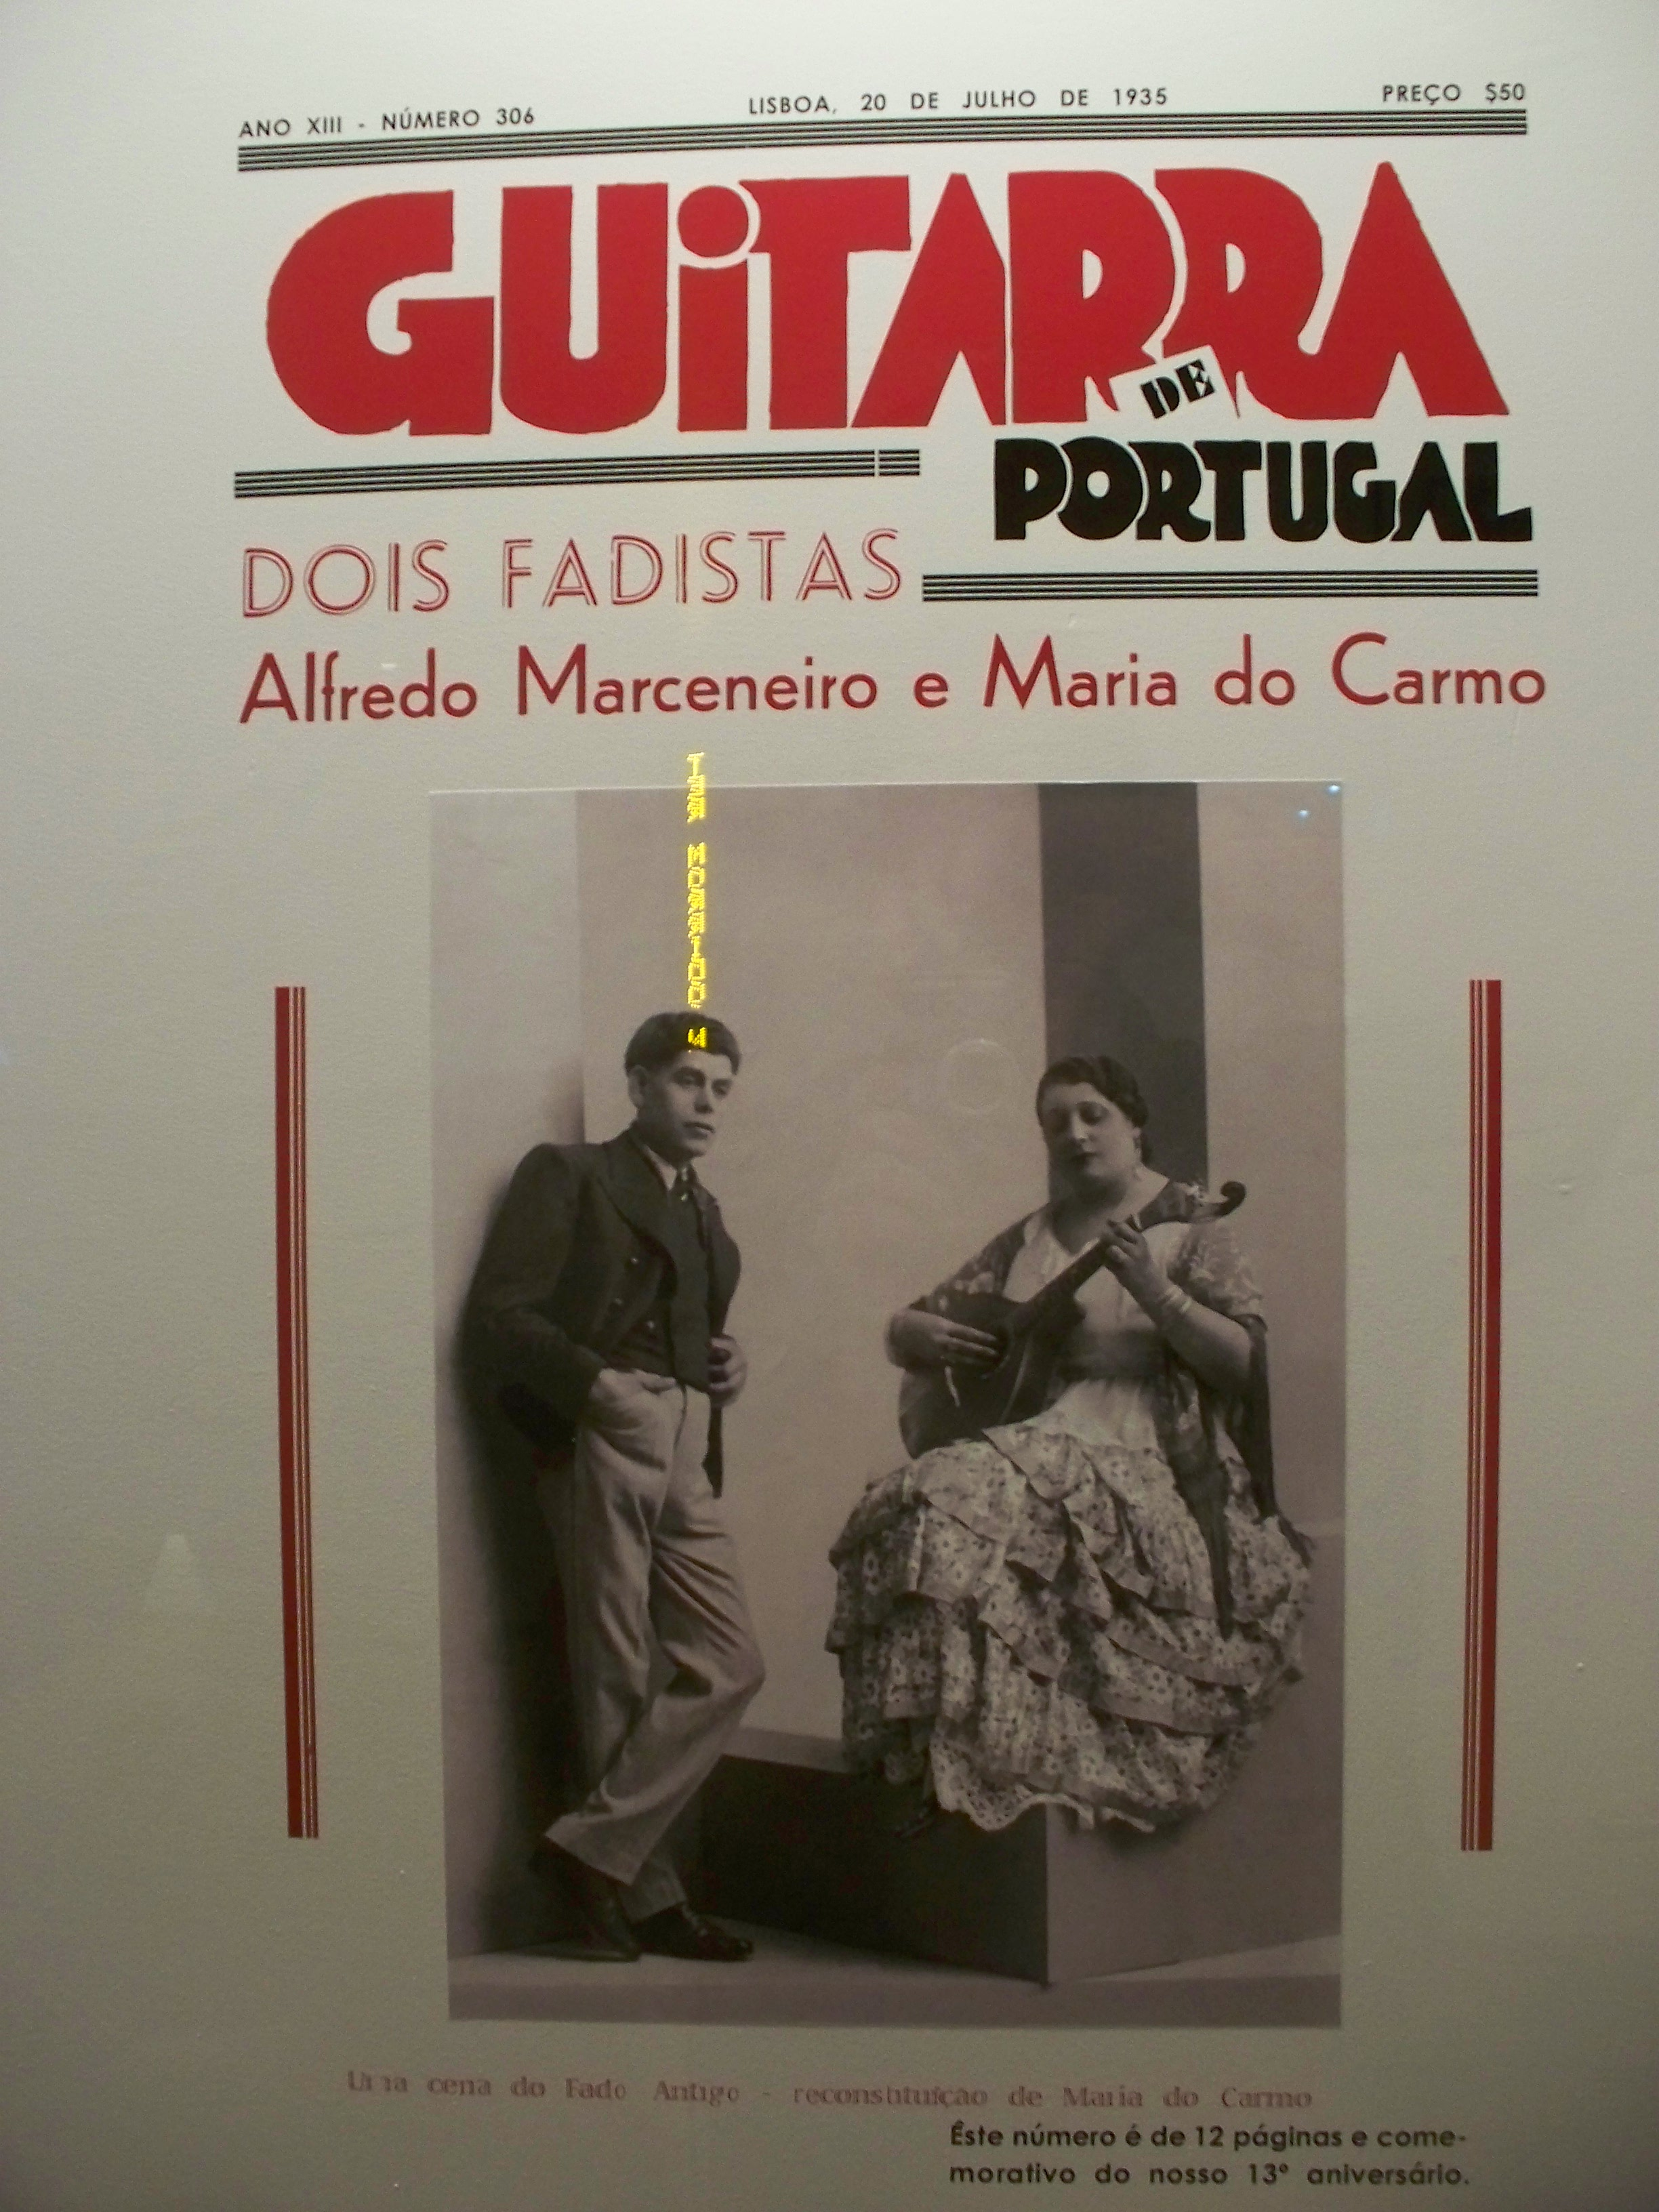 Fado has been played since the 1830s, and these 2 folks are legends even today.